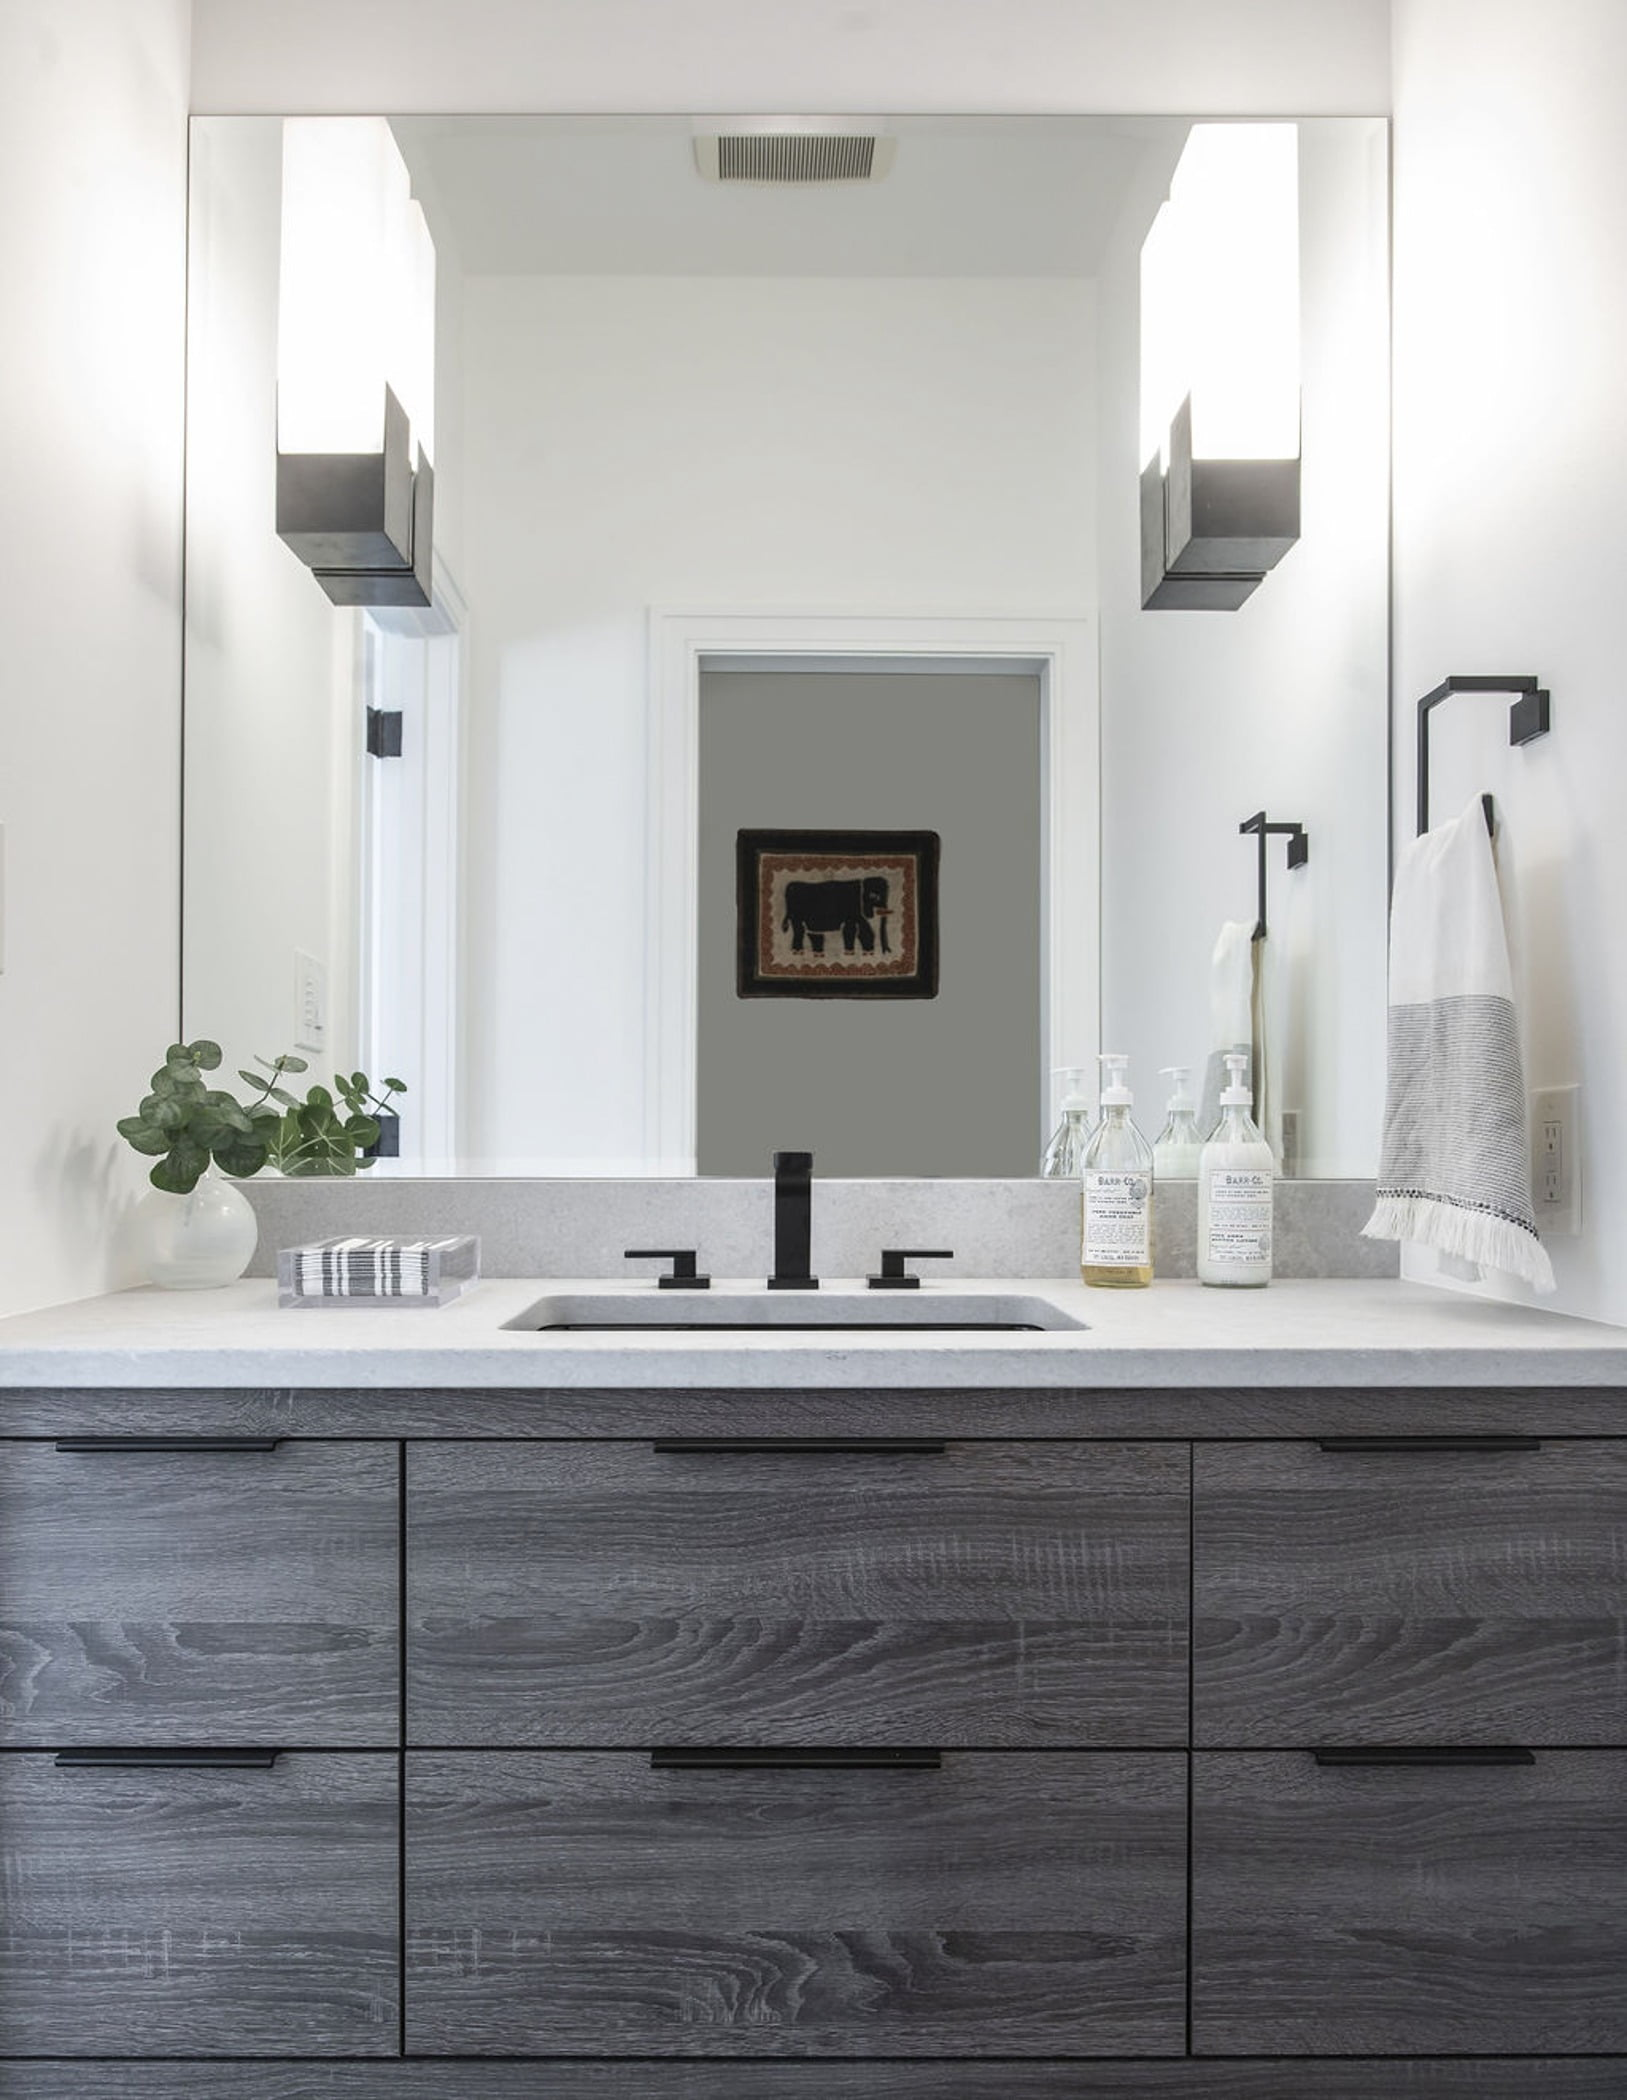 Modern style bathroom sink with dark grey cabinetry, marble countertops, and sleek black handles and faucet